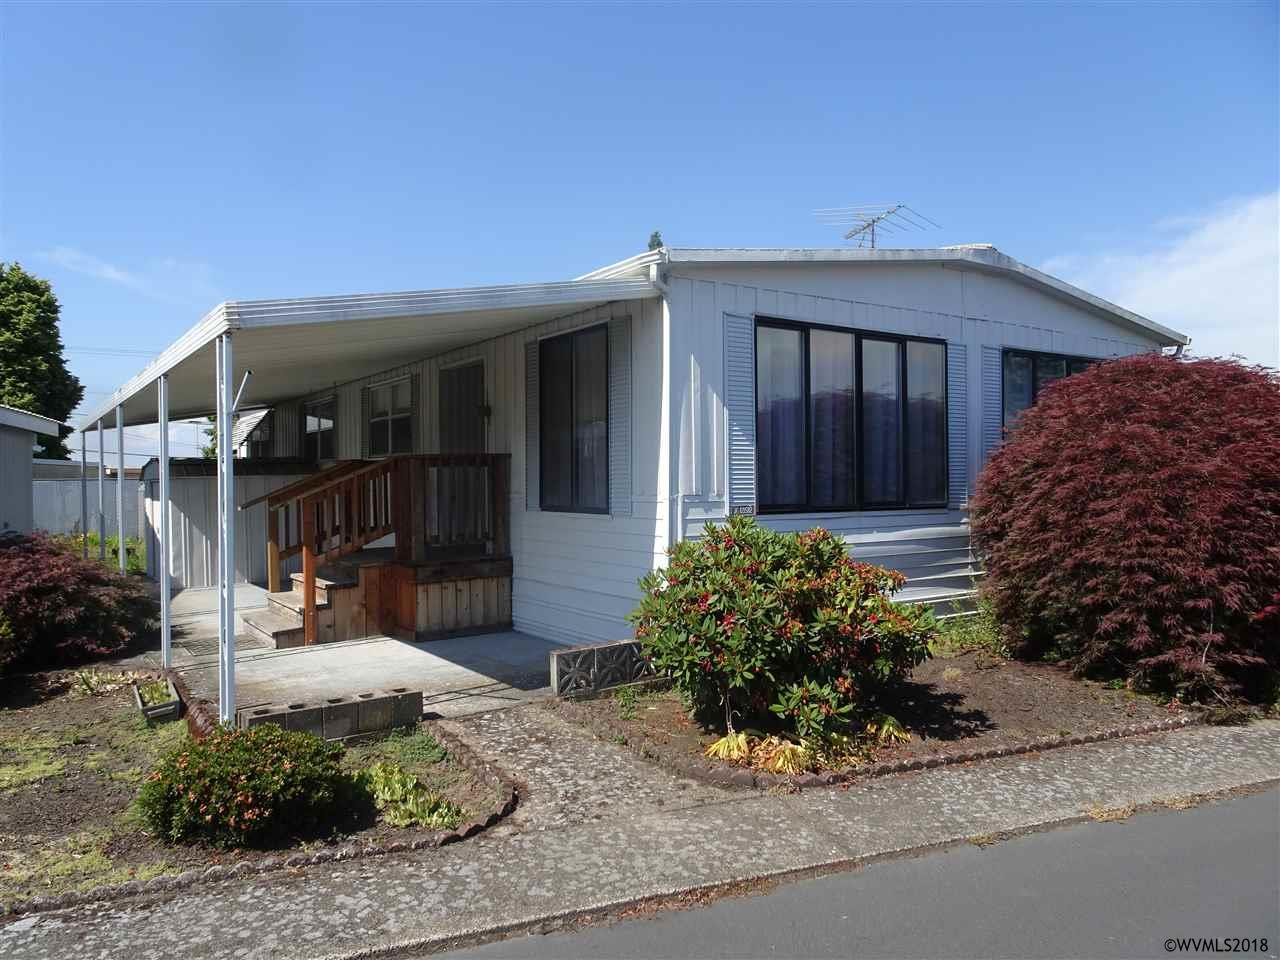 4231 Lemon (#55) St NE 55, Salem, Oregon